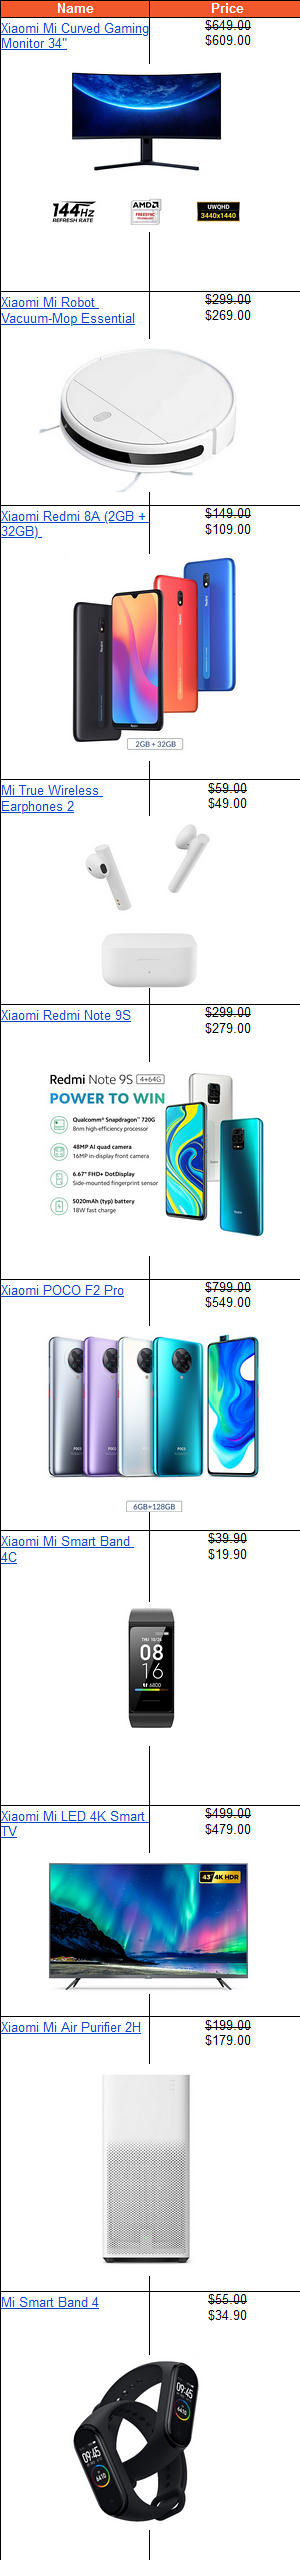 Check out these promotions on Xiaomi's official store in Shopee, especially the flash sale timings (next to the links below to the product listing pages).